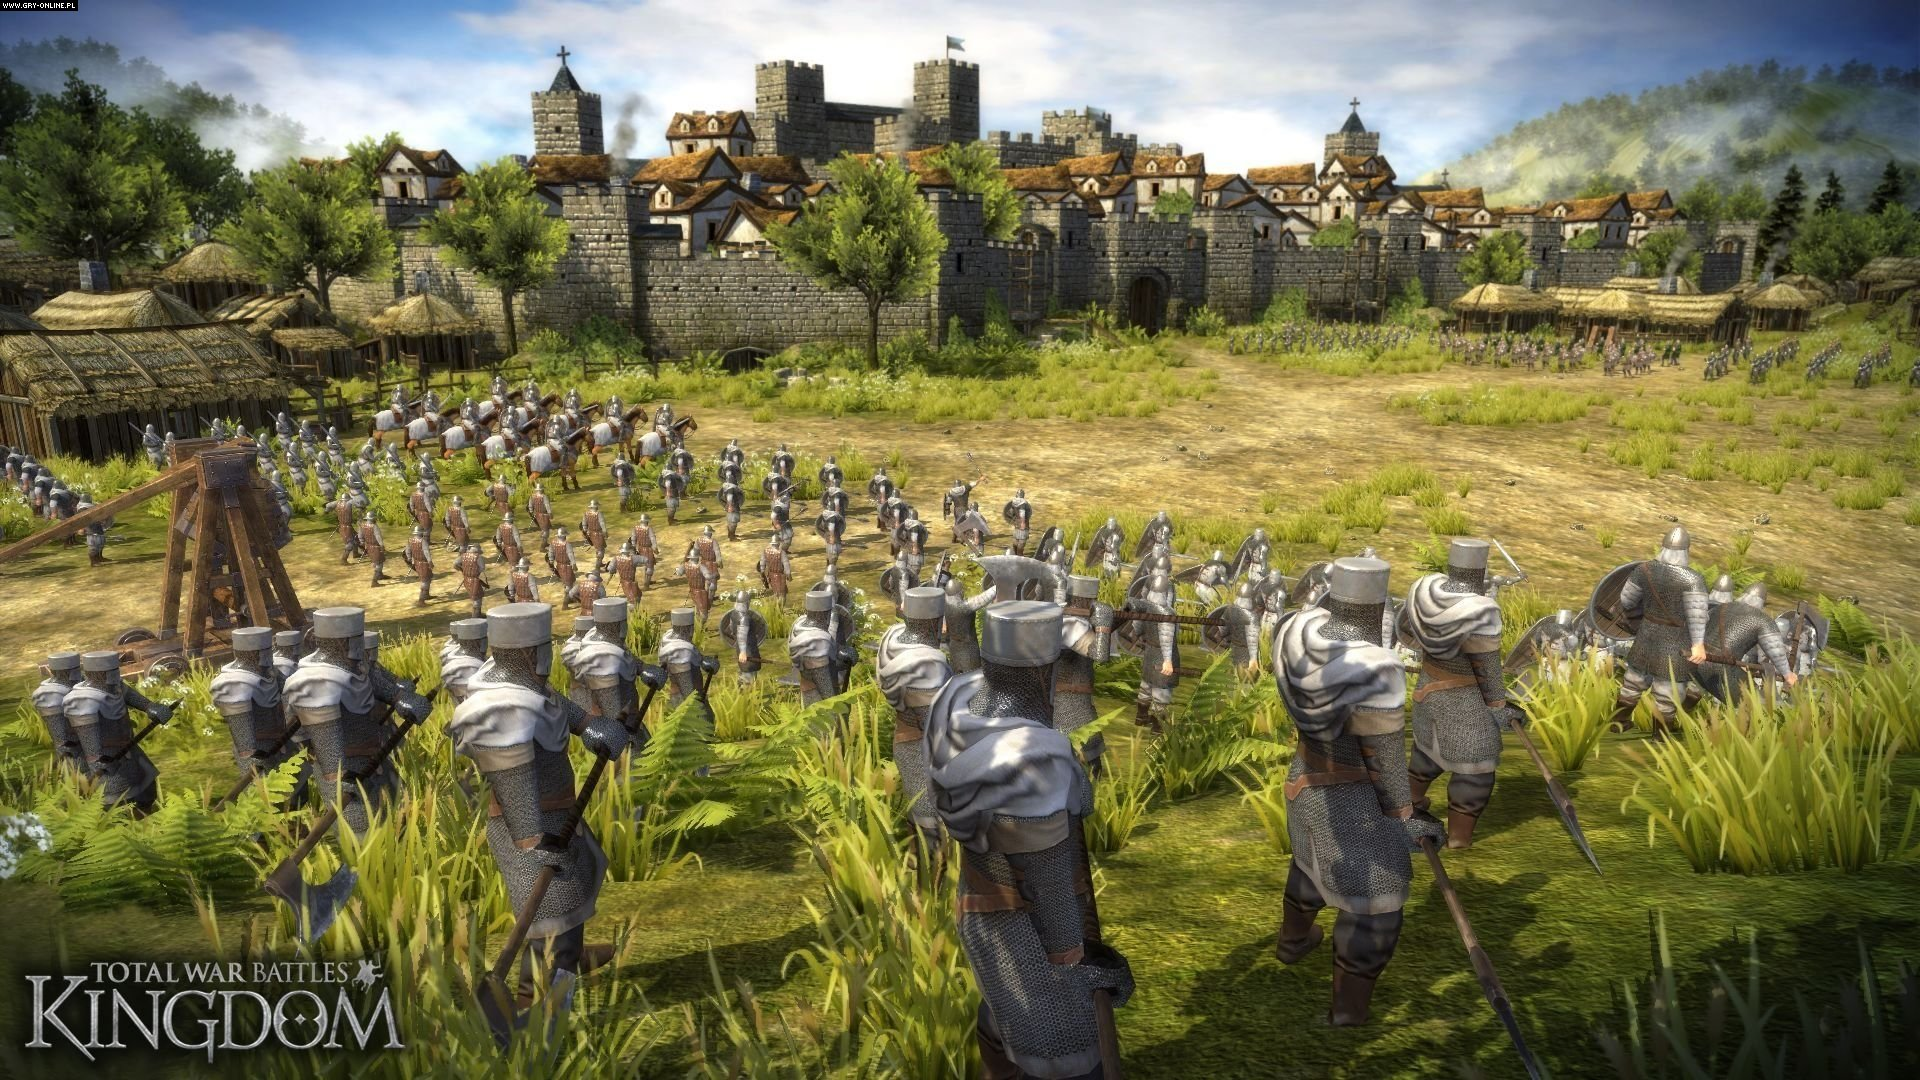 Total War Battles: Kingdom PC, iOS, AND Games Image 21/36, Creative Assembly, SEGA